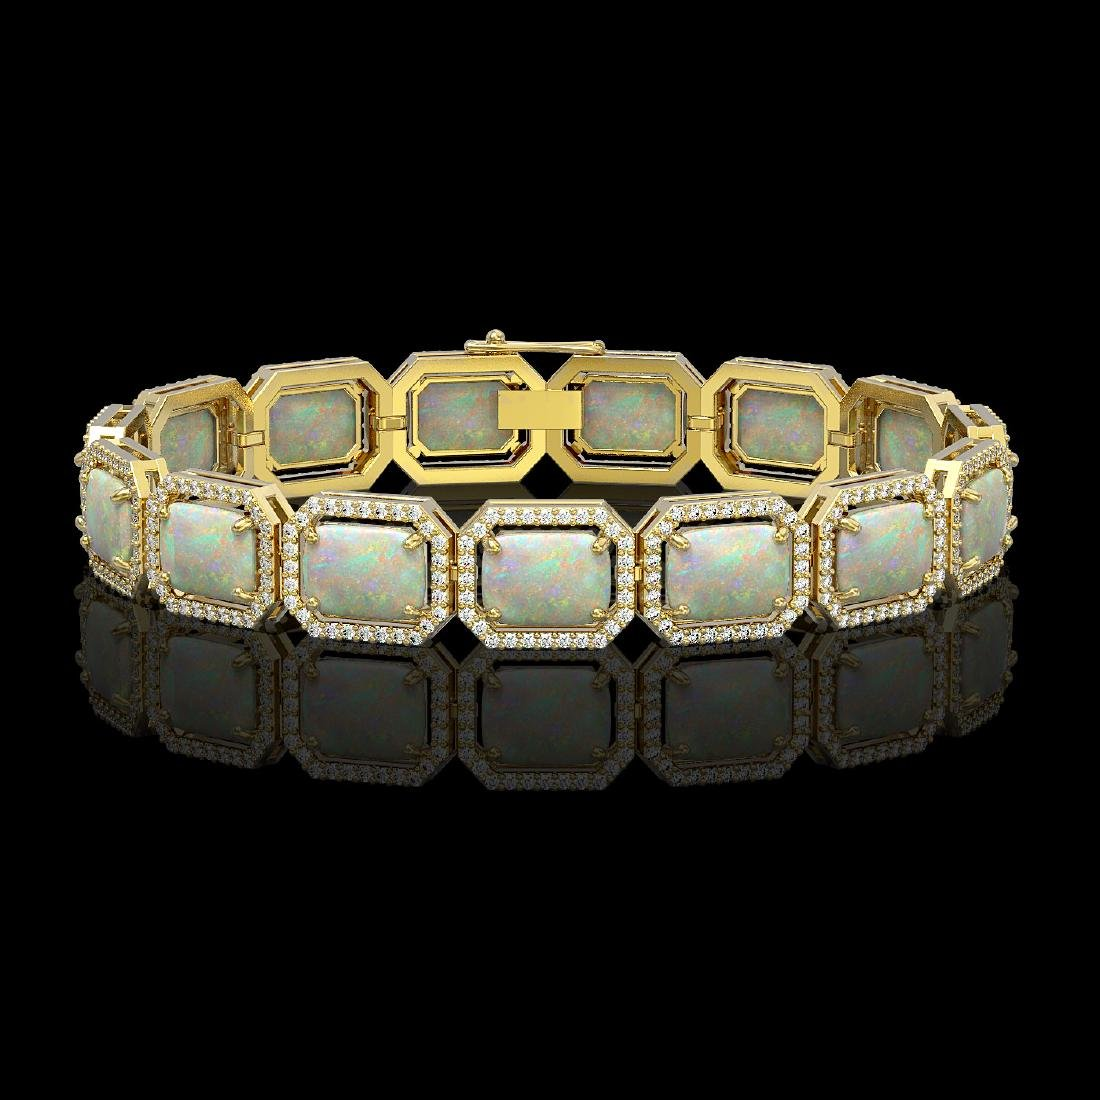 24.37 CTW Opal & Diamond Halo Bracelet 10K Yellow Gold